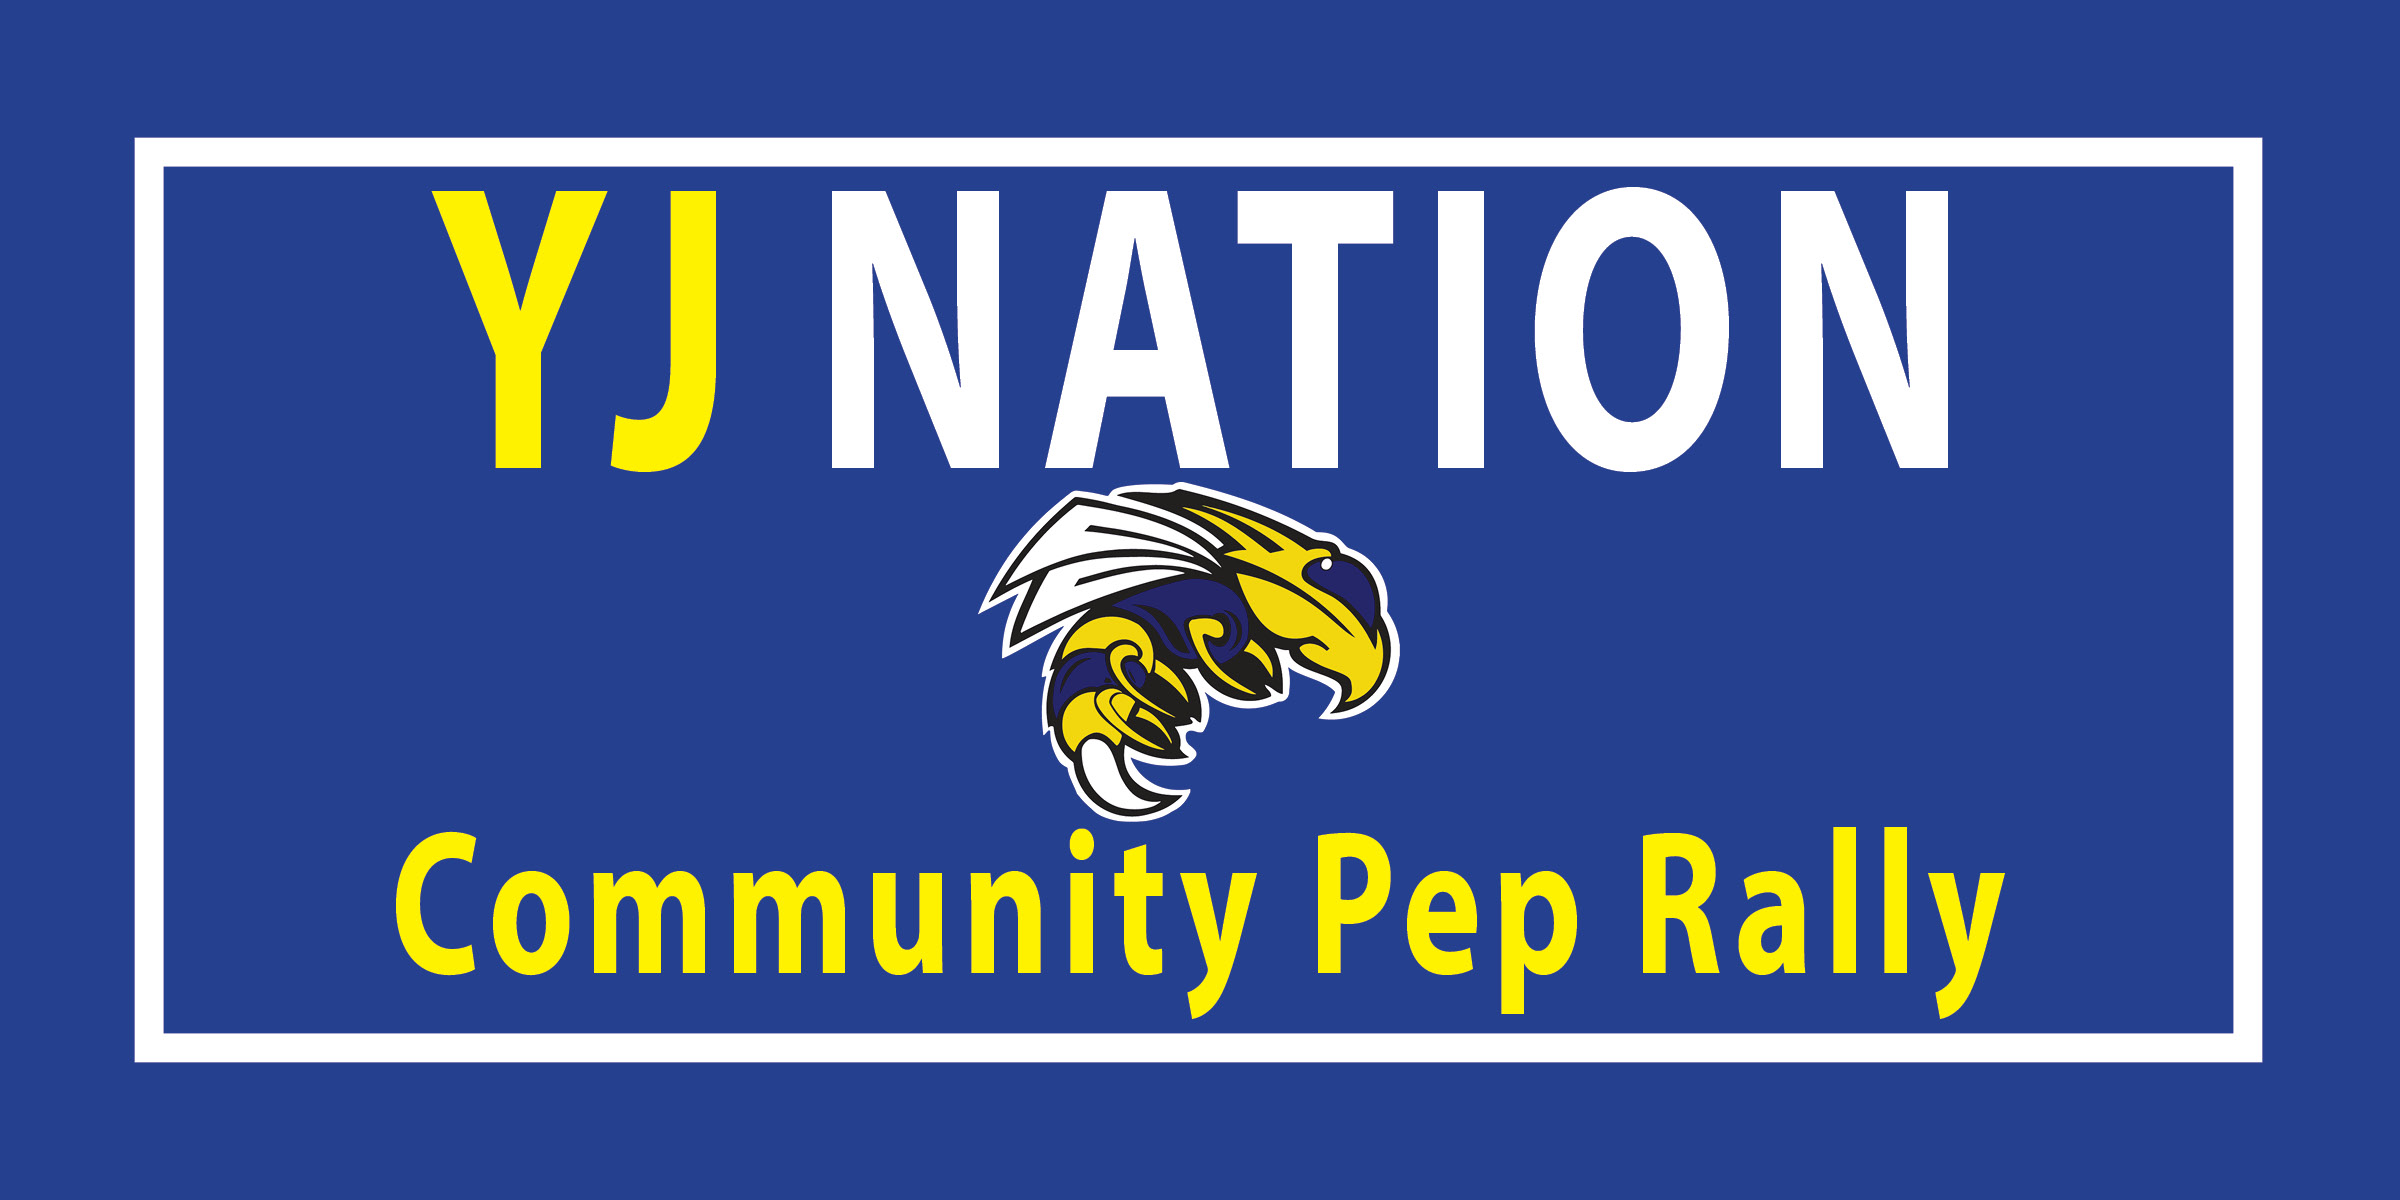 Don't forget about the COMMUNITY Pep Rally tonight at 6 p.m.